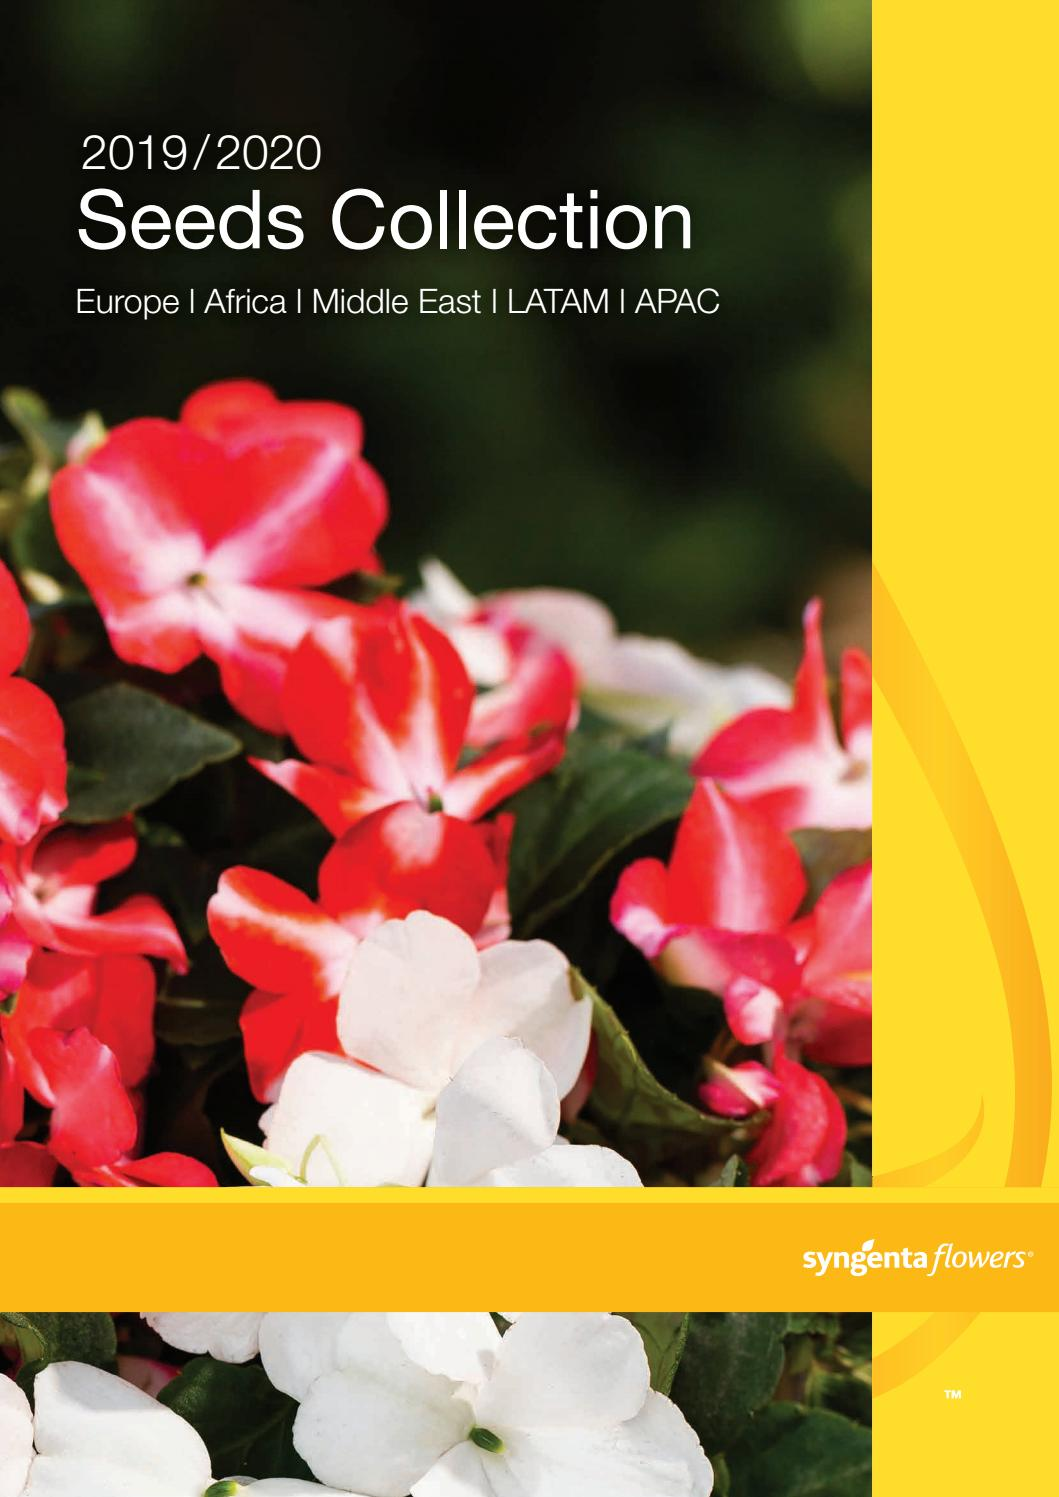 Speedy Seed 6 in 1 Seed Collection Range for Easy Gardening Hanging Baskets